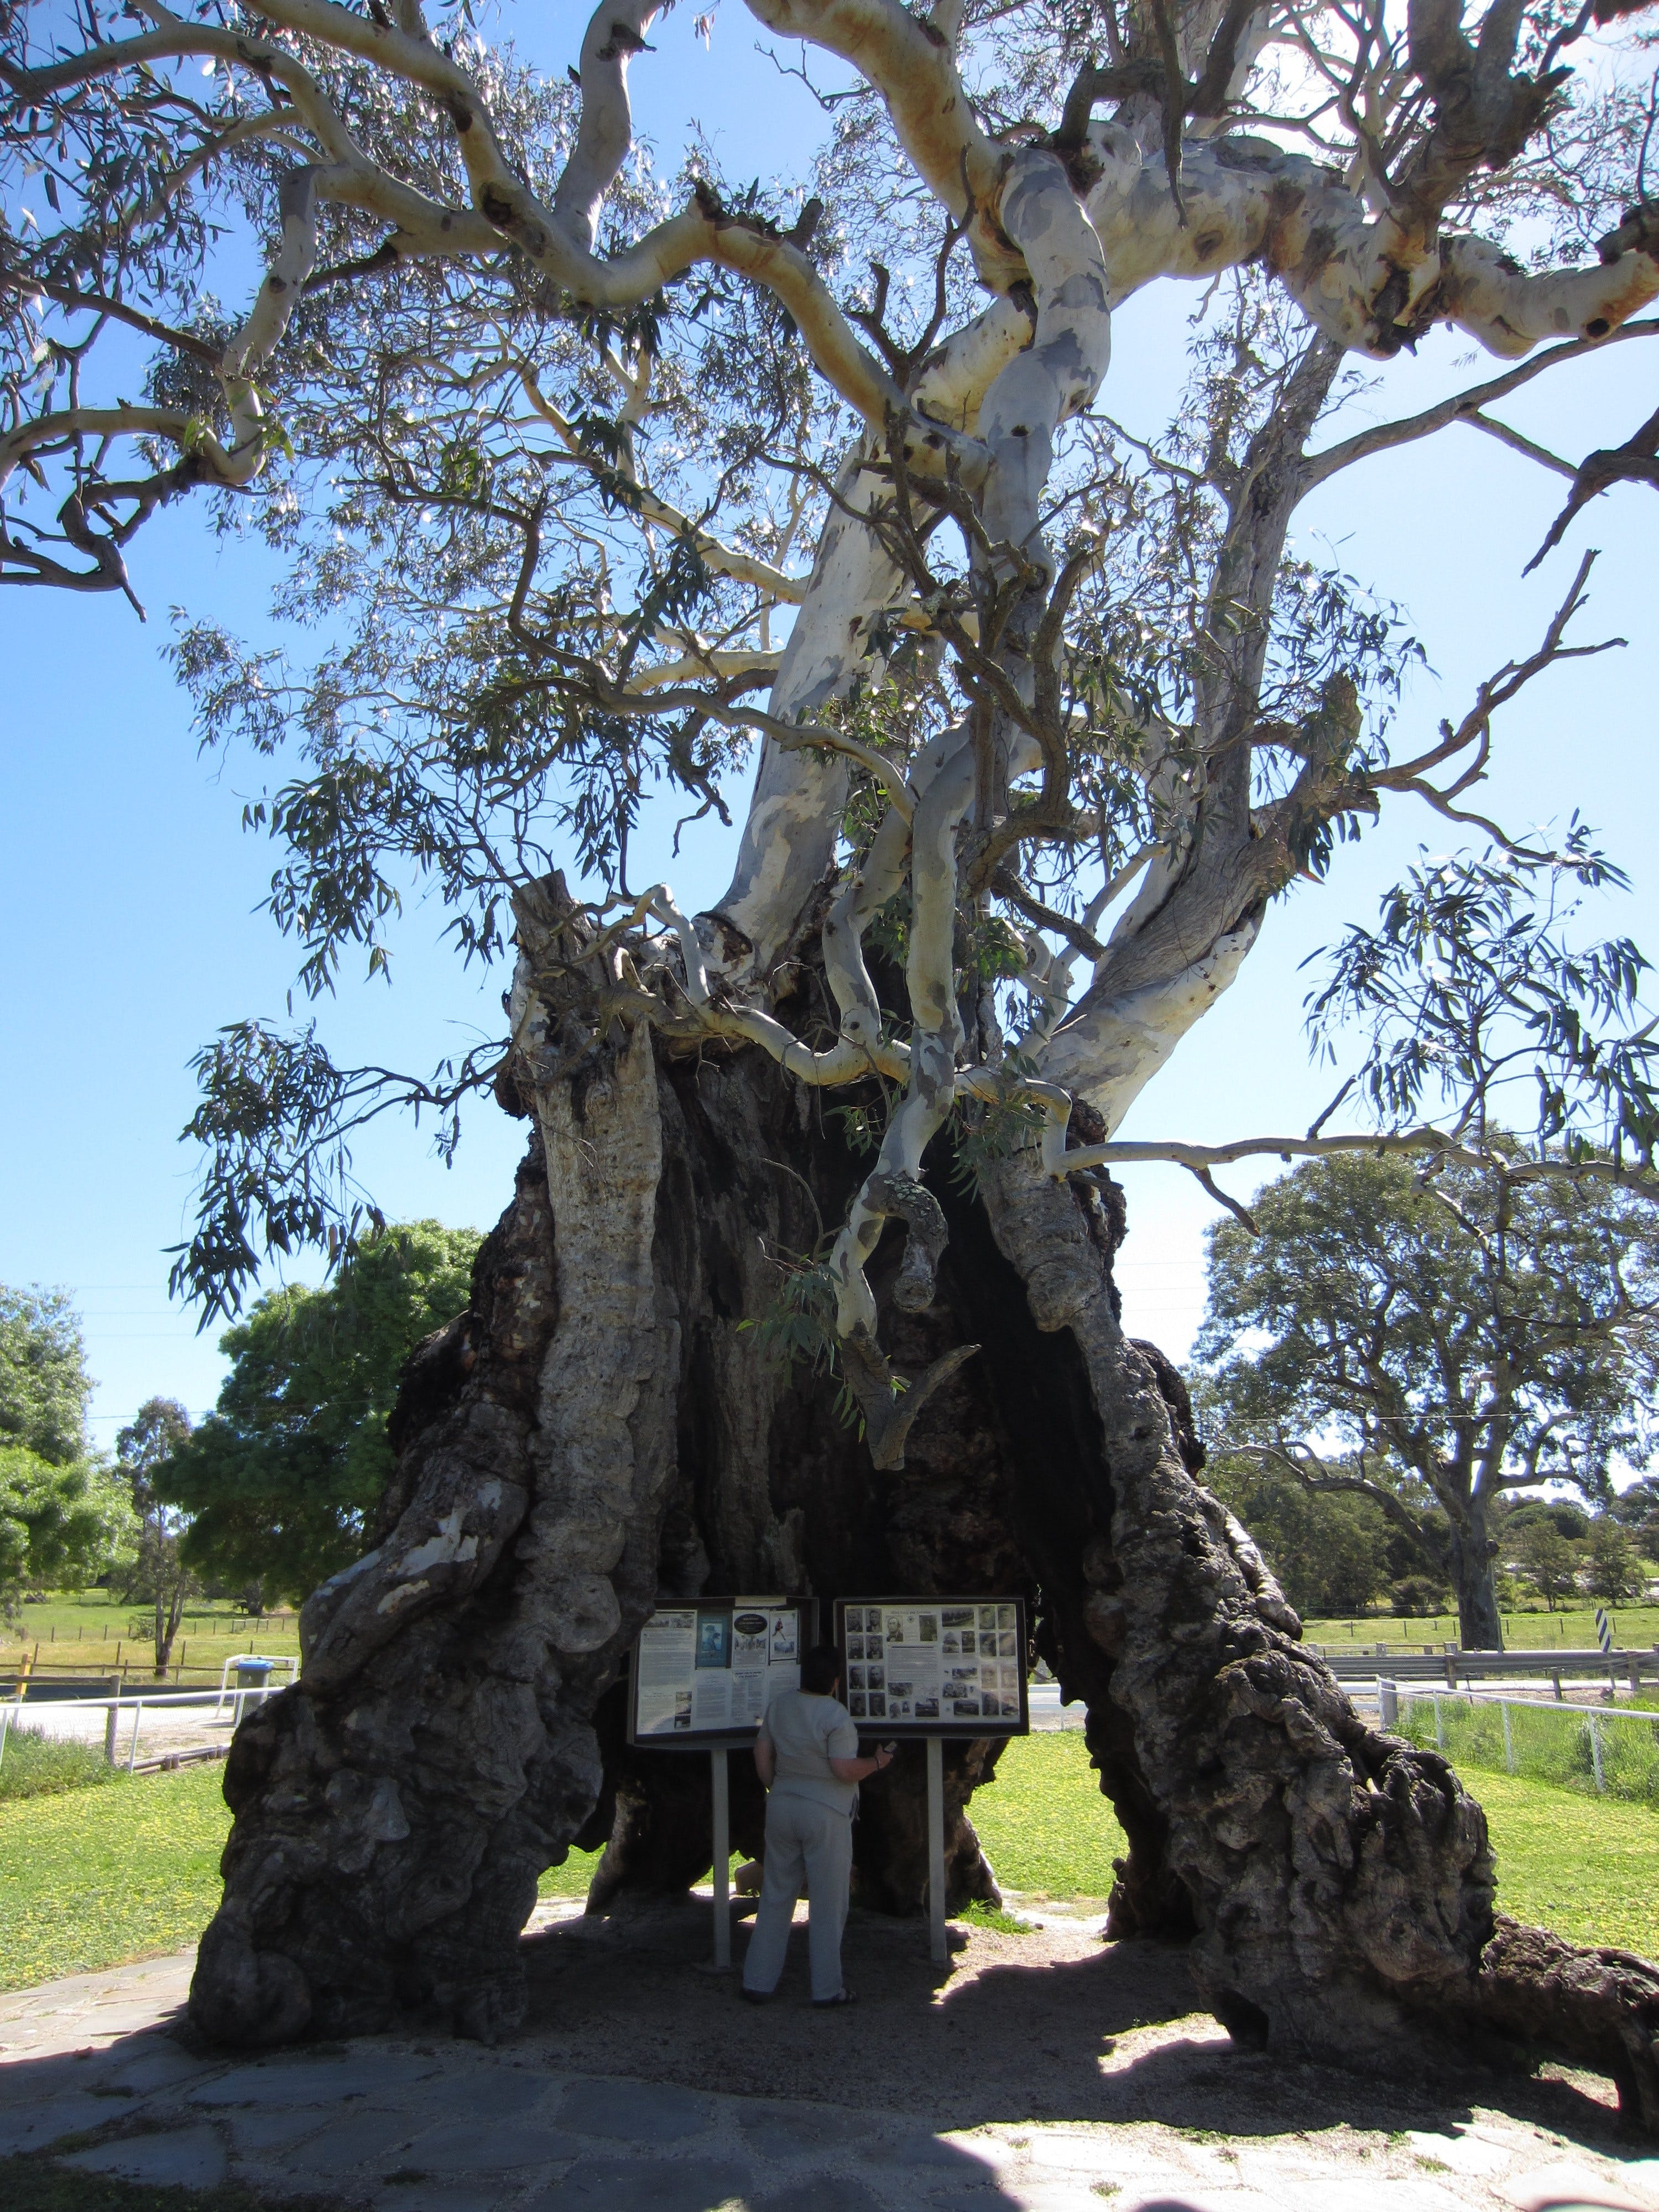 The Herbig Family Tree - Attractions Sydney